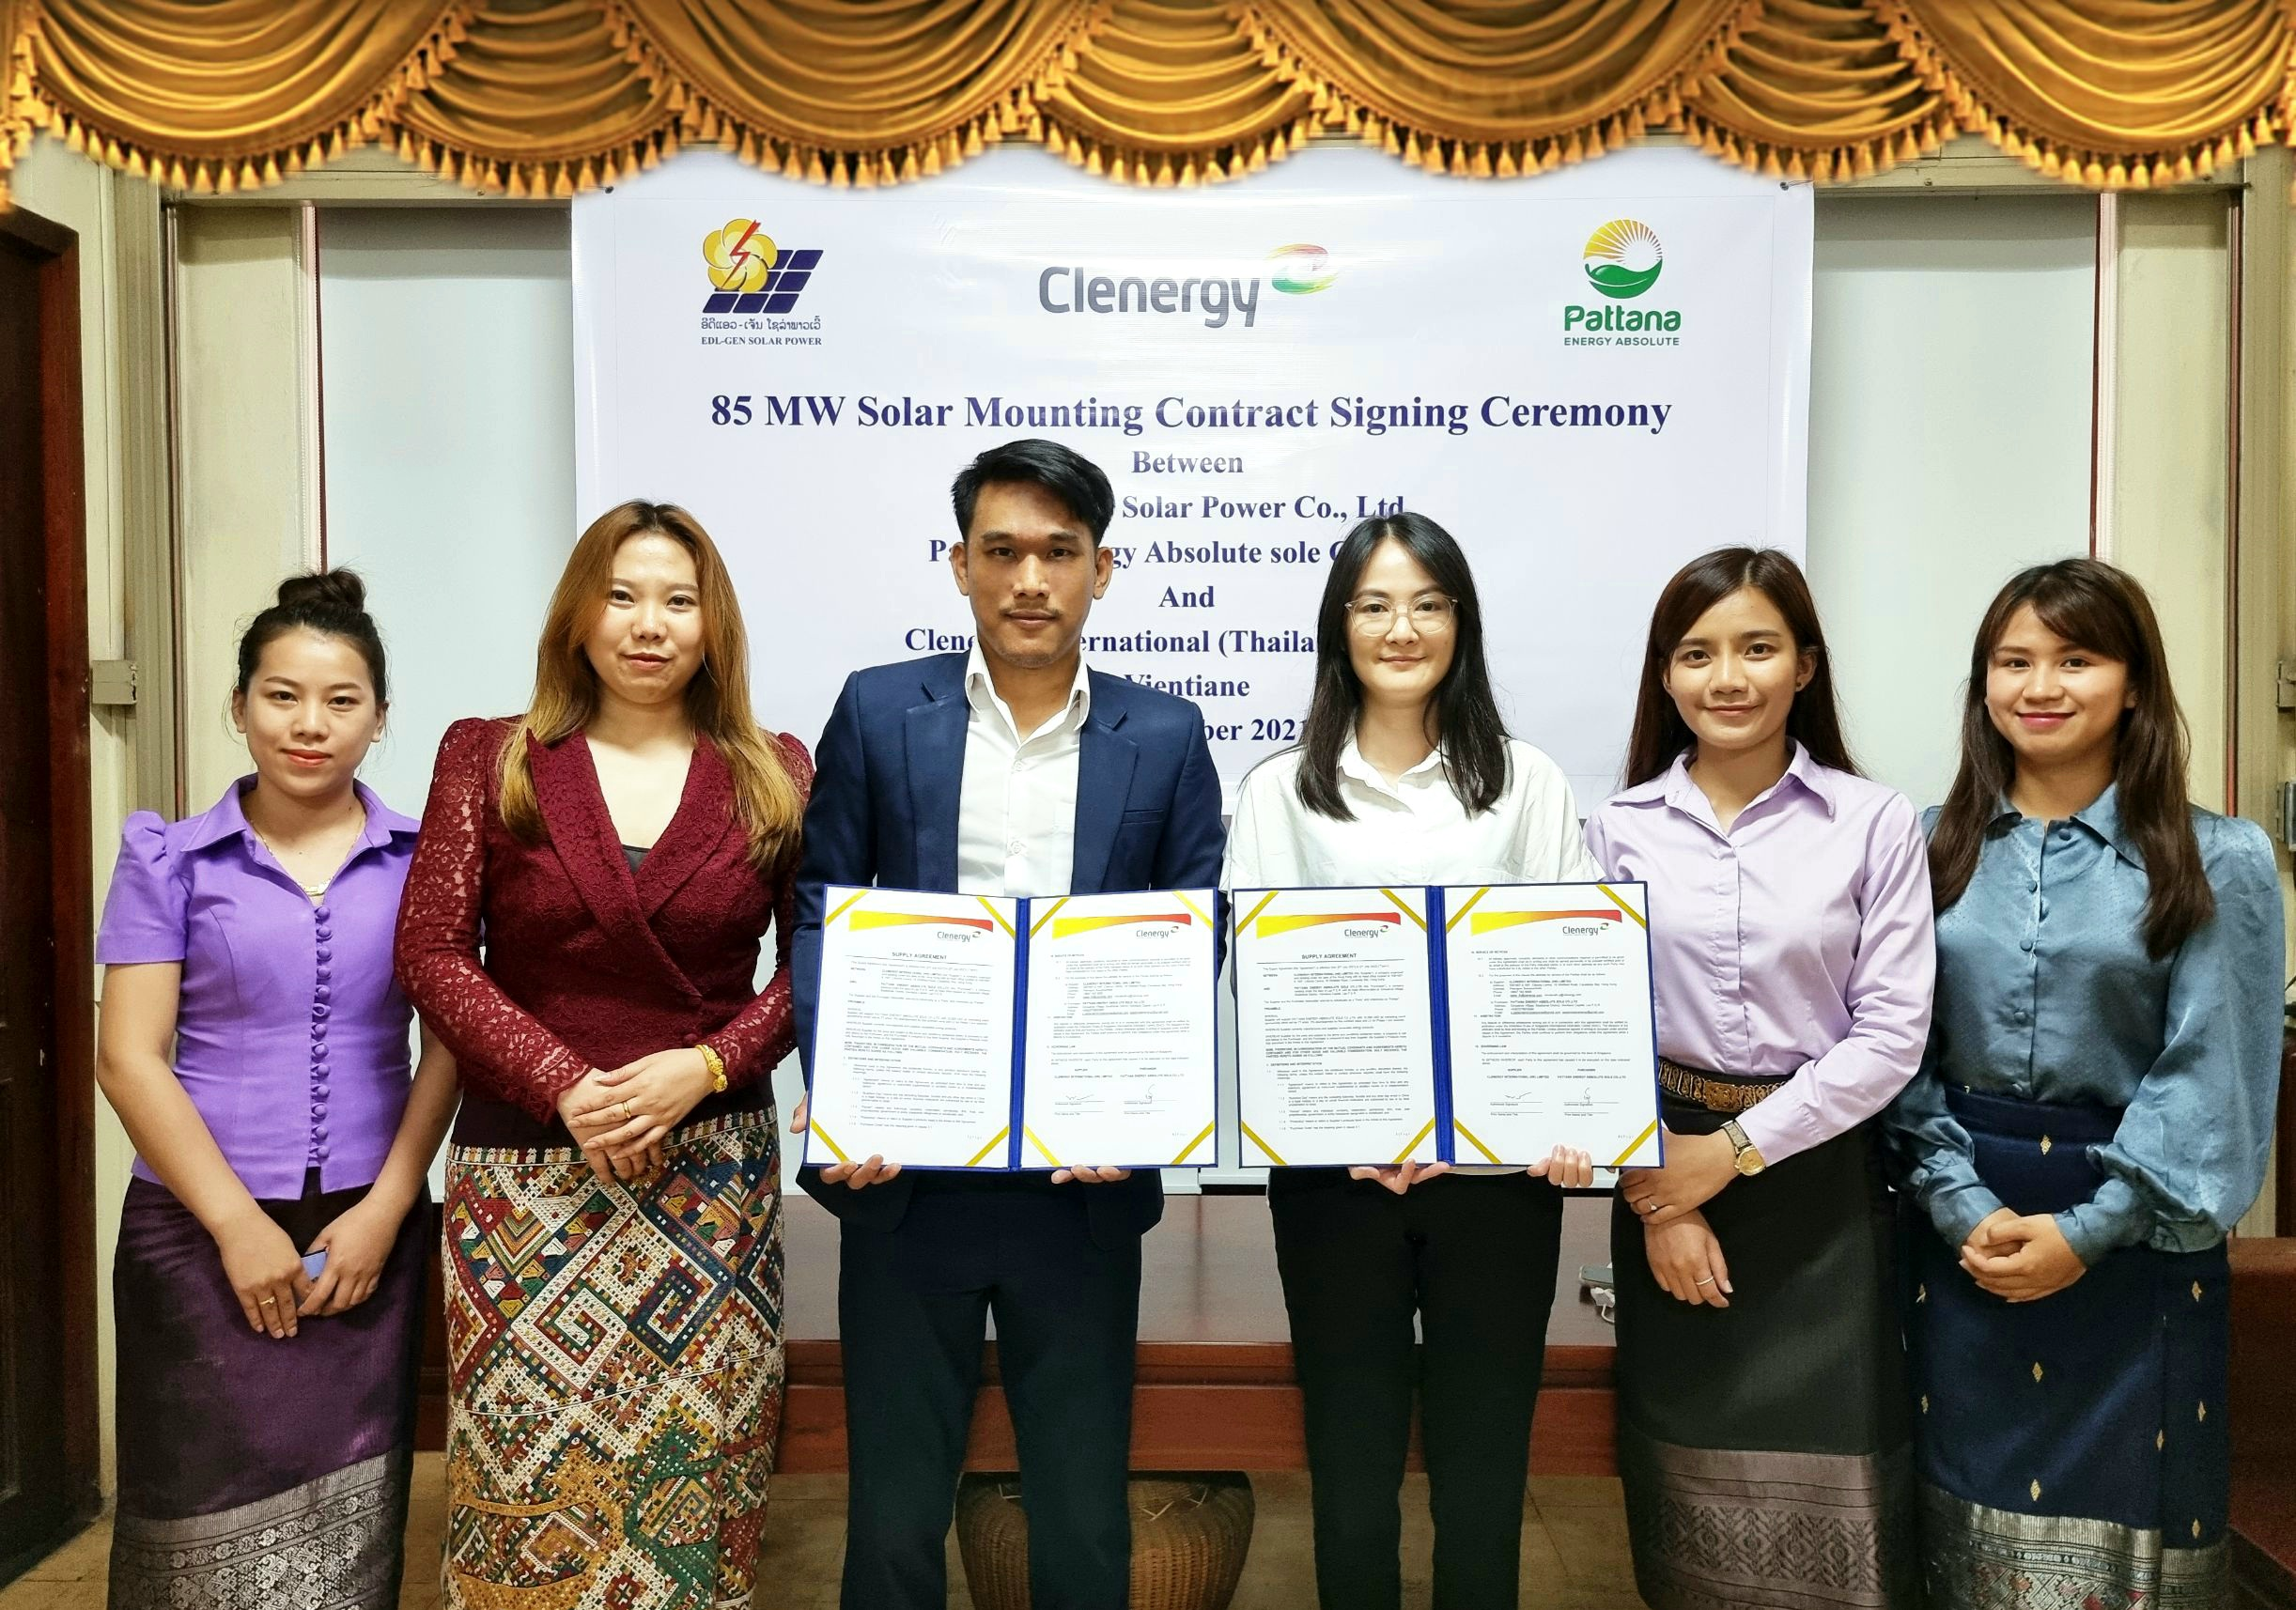 Clenergy Thailand signs an agreement with EDL-GEN Solar Power